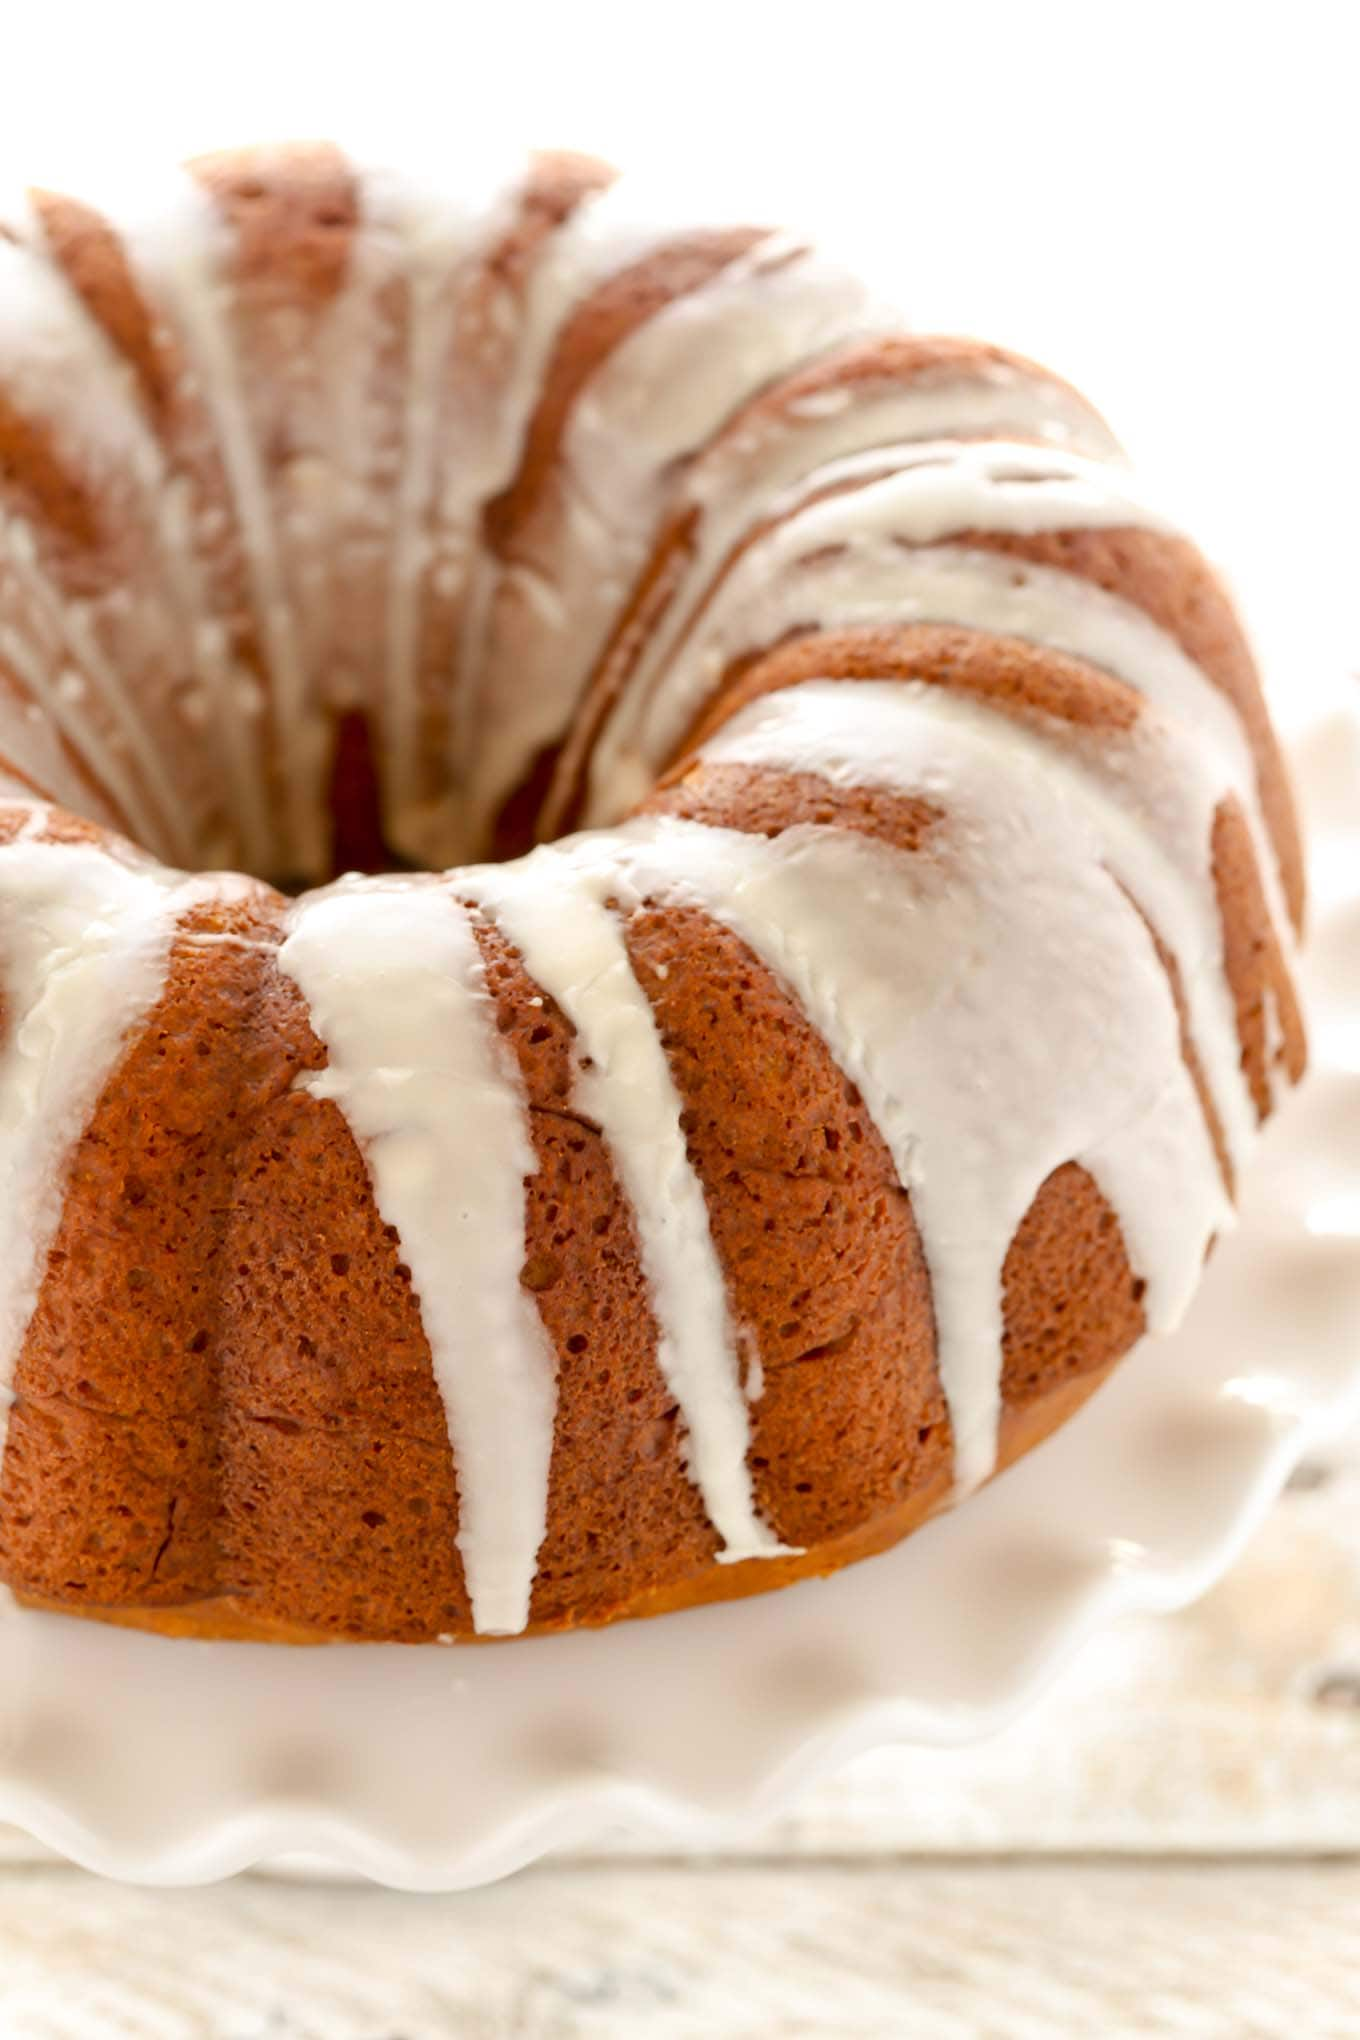 Vanilla Cream Filled Bundt Cake